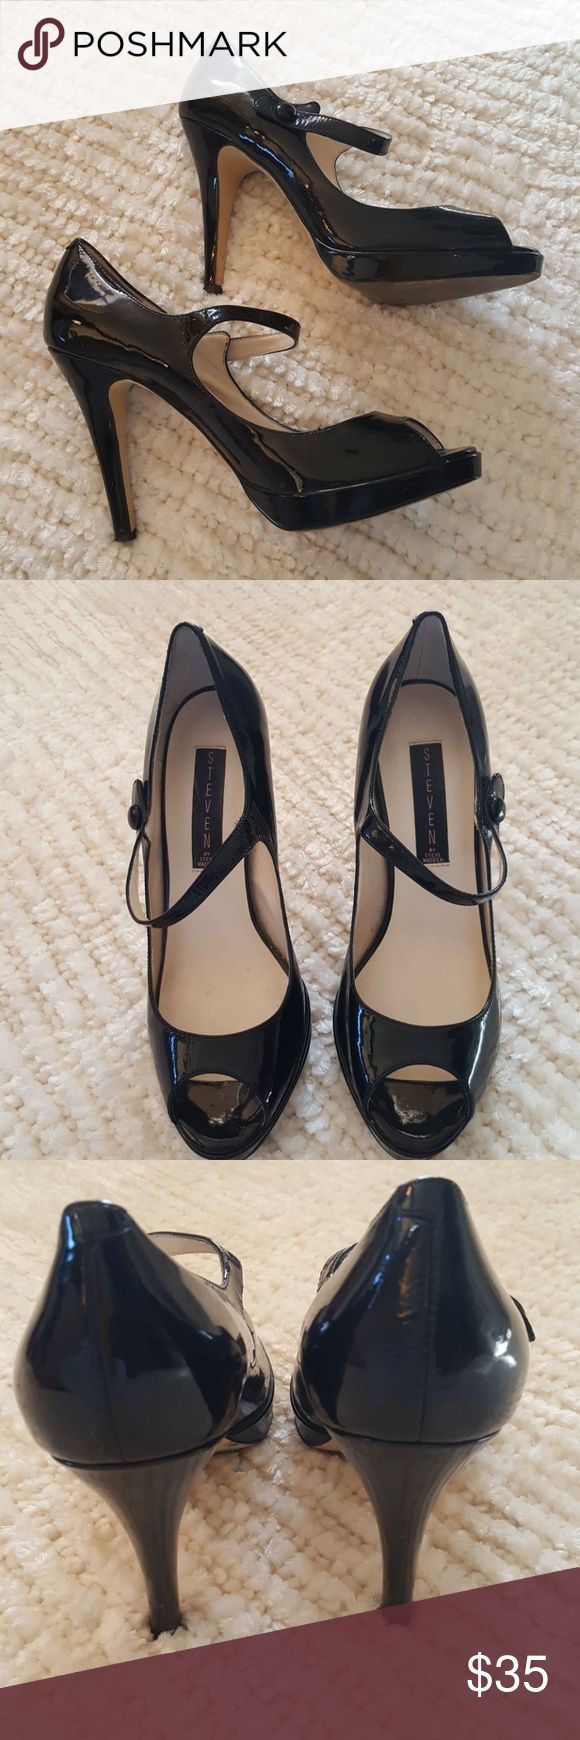 "Sassy Steve Madden black peep toe heels 4"" heels and black patent leather uppers.  The uppers are in pristone condition.  The soles show some wear but are still in excellant condition. Steve Madden Shoes Heels"